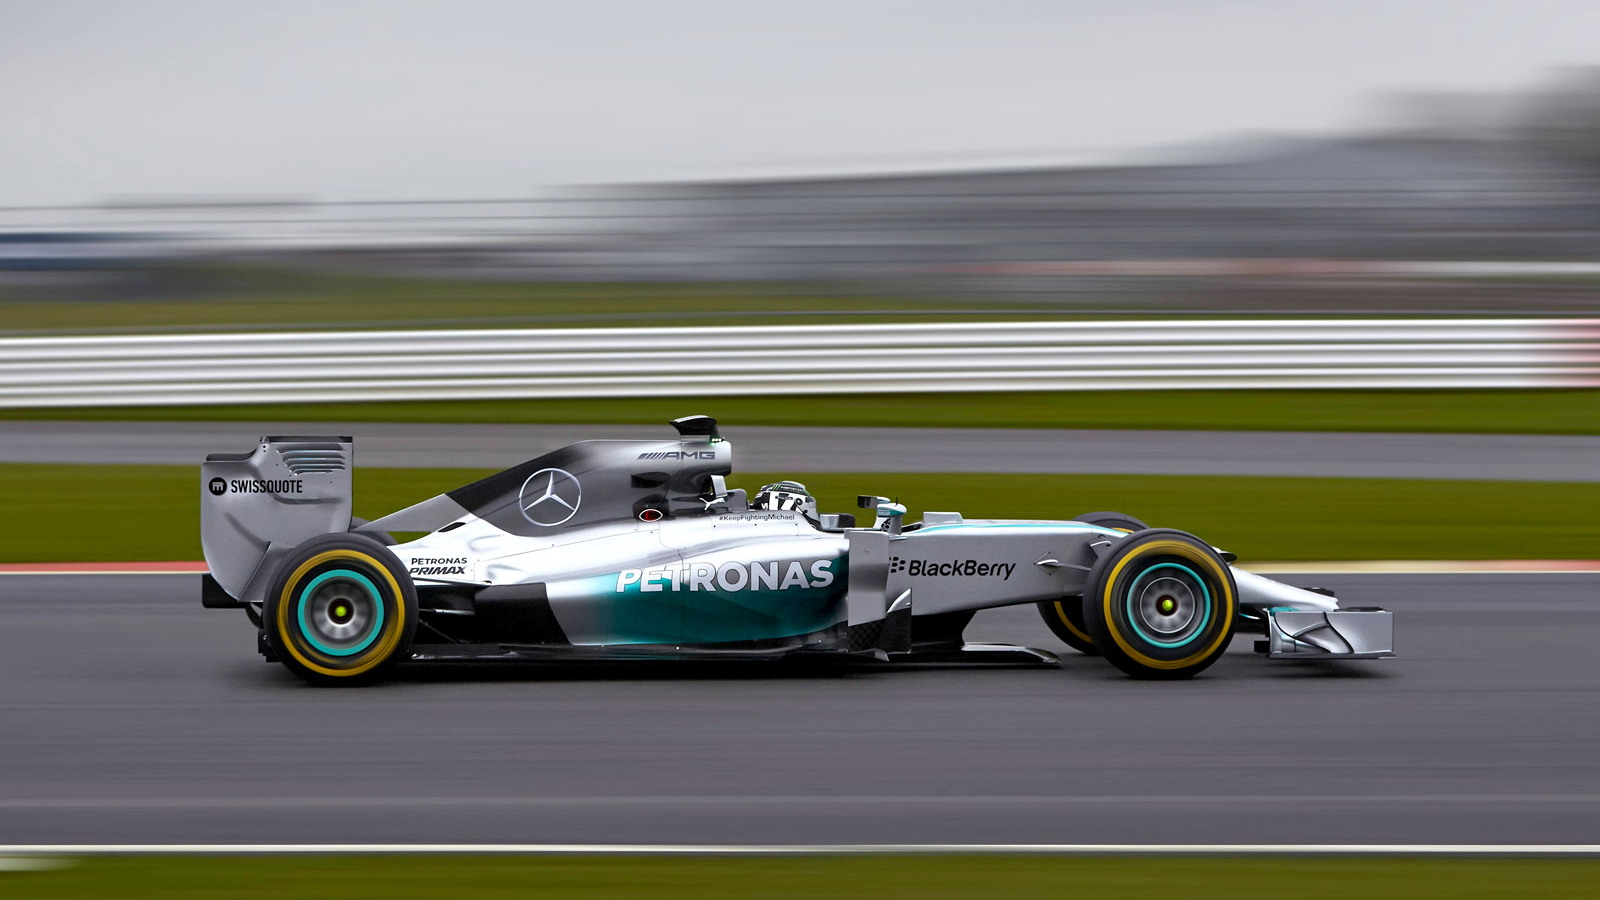 Mercedes AMG's W05 2014 Formula One car